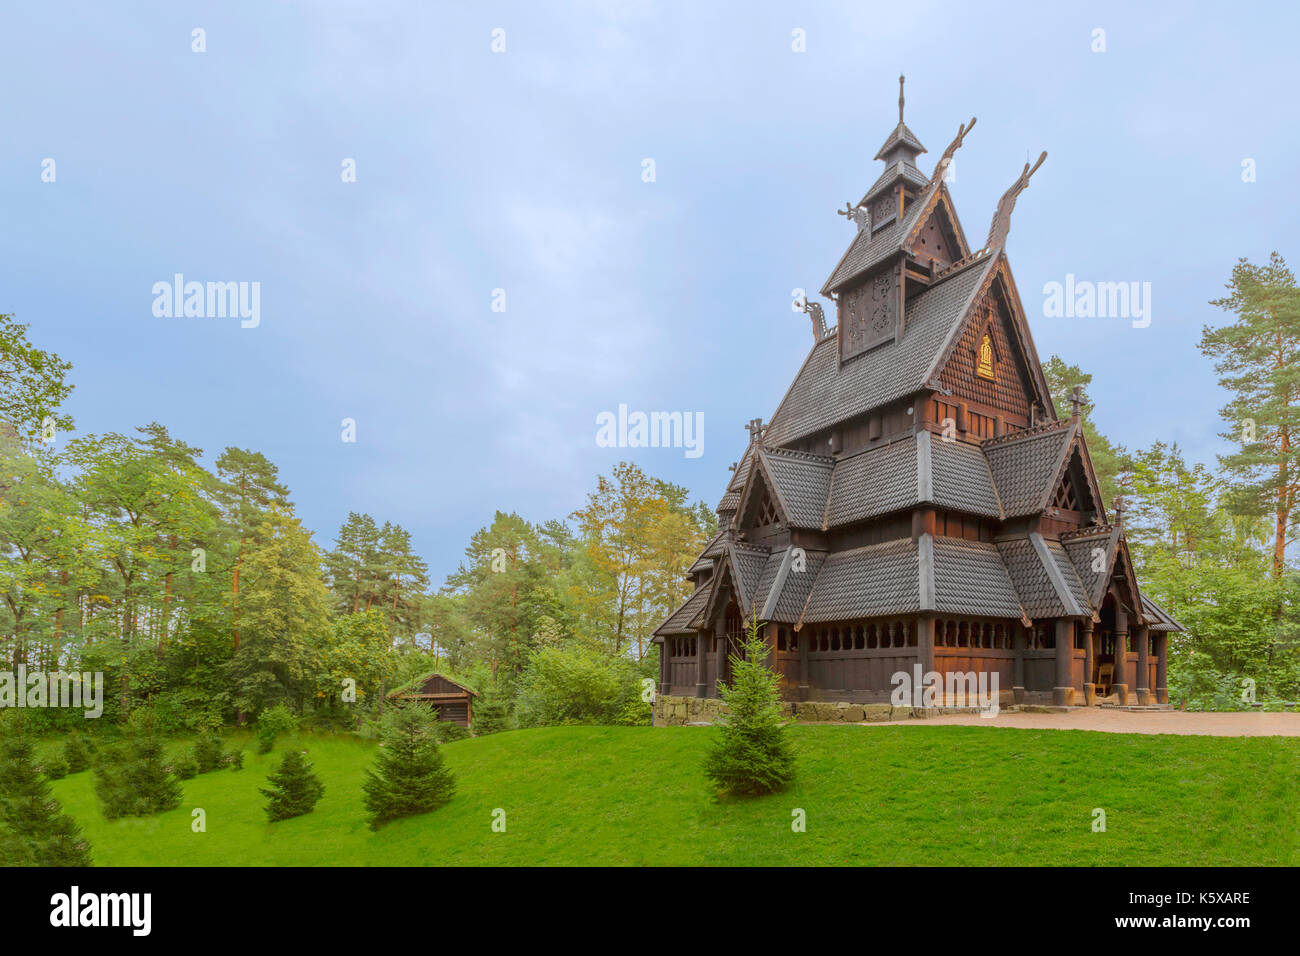 The ancient Stave Church ( Stavkirke ) from Gol in the NORSK FOLKEMUSEUM-  an open air Museum of the Norwegian Cultural History, Oslo, Bygdøy, Norway. - Stock Image